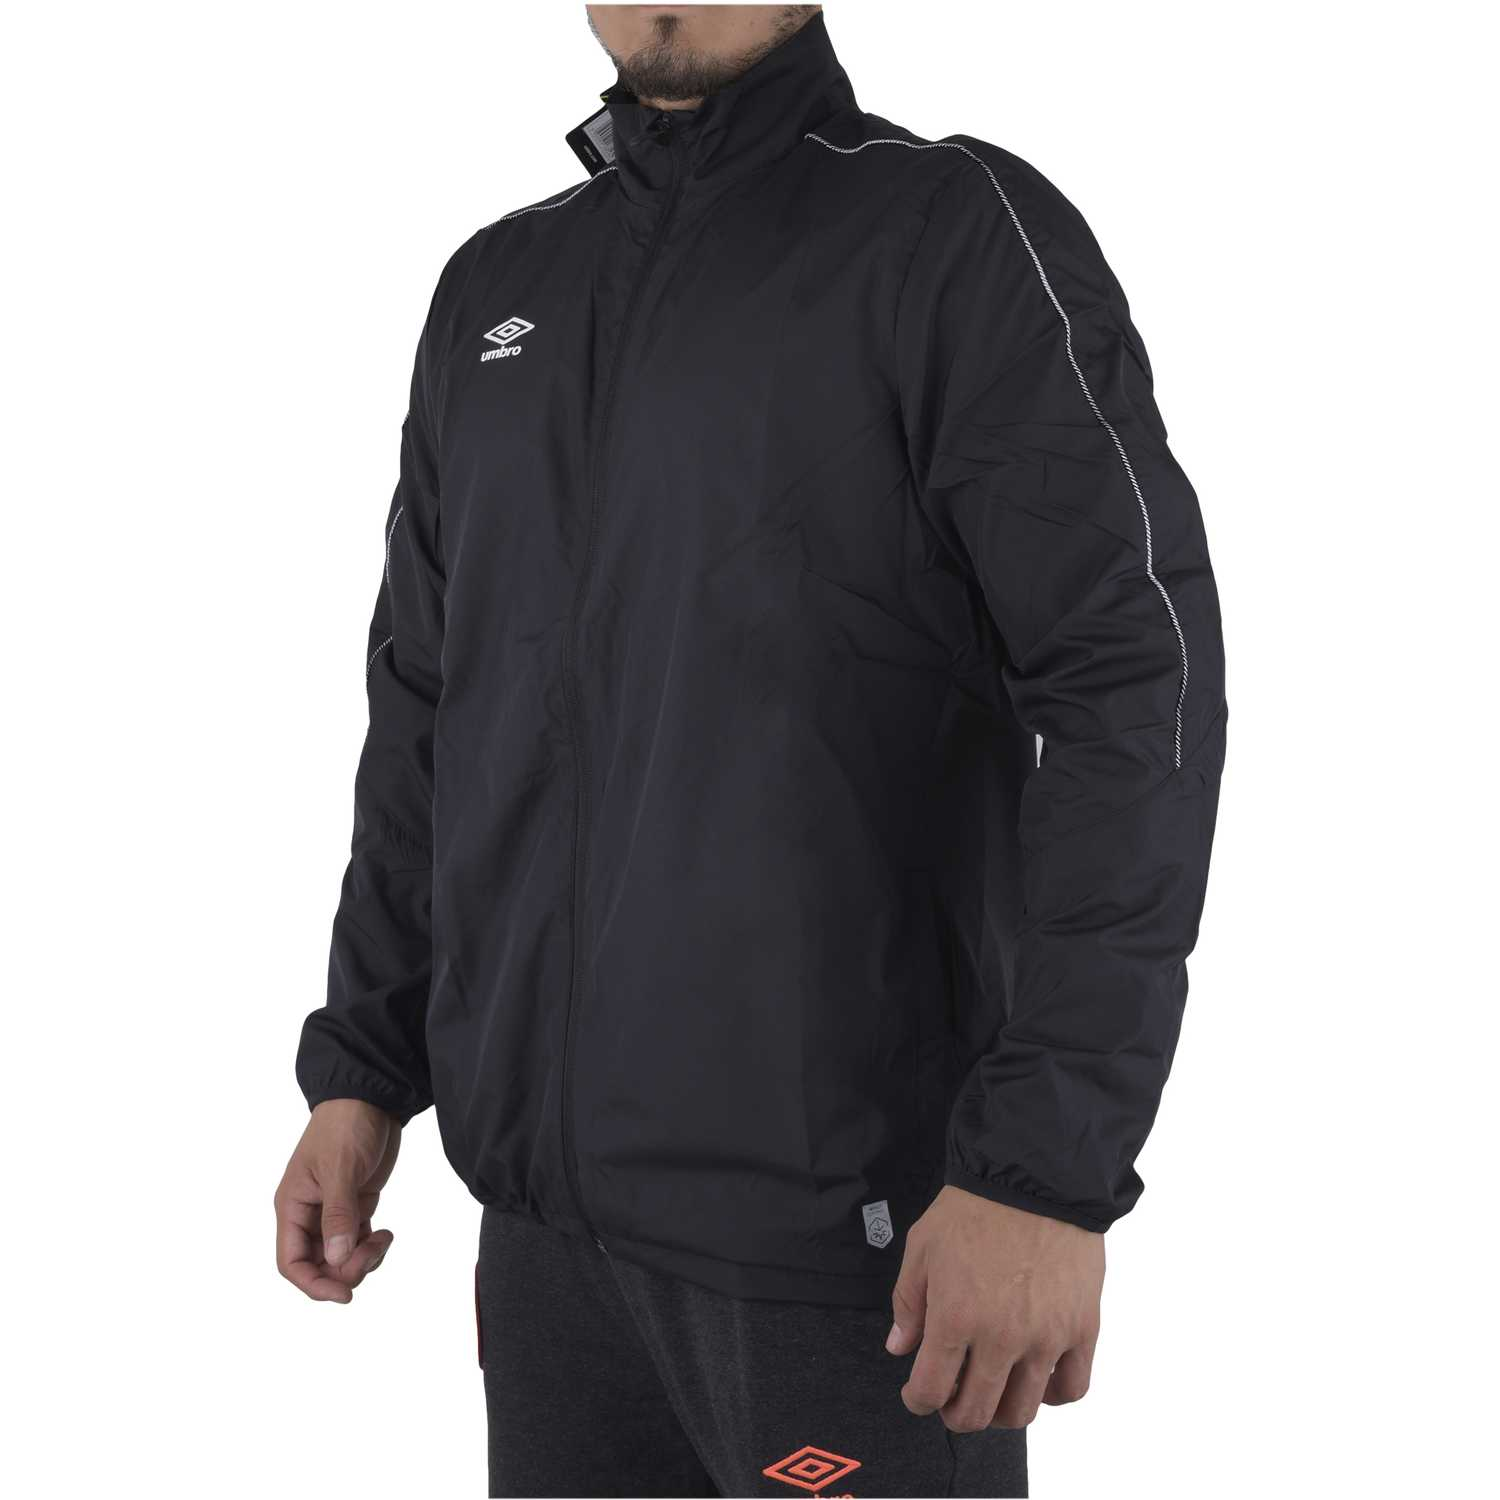 Deportivo de Niña Umbro Negro pro training shower jacket